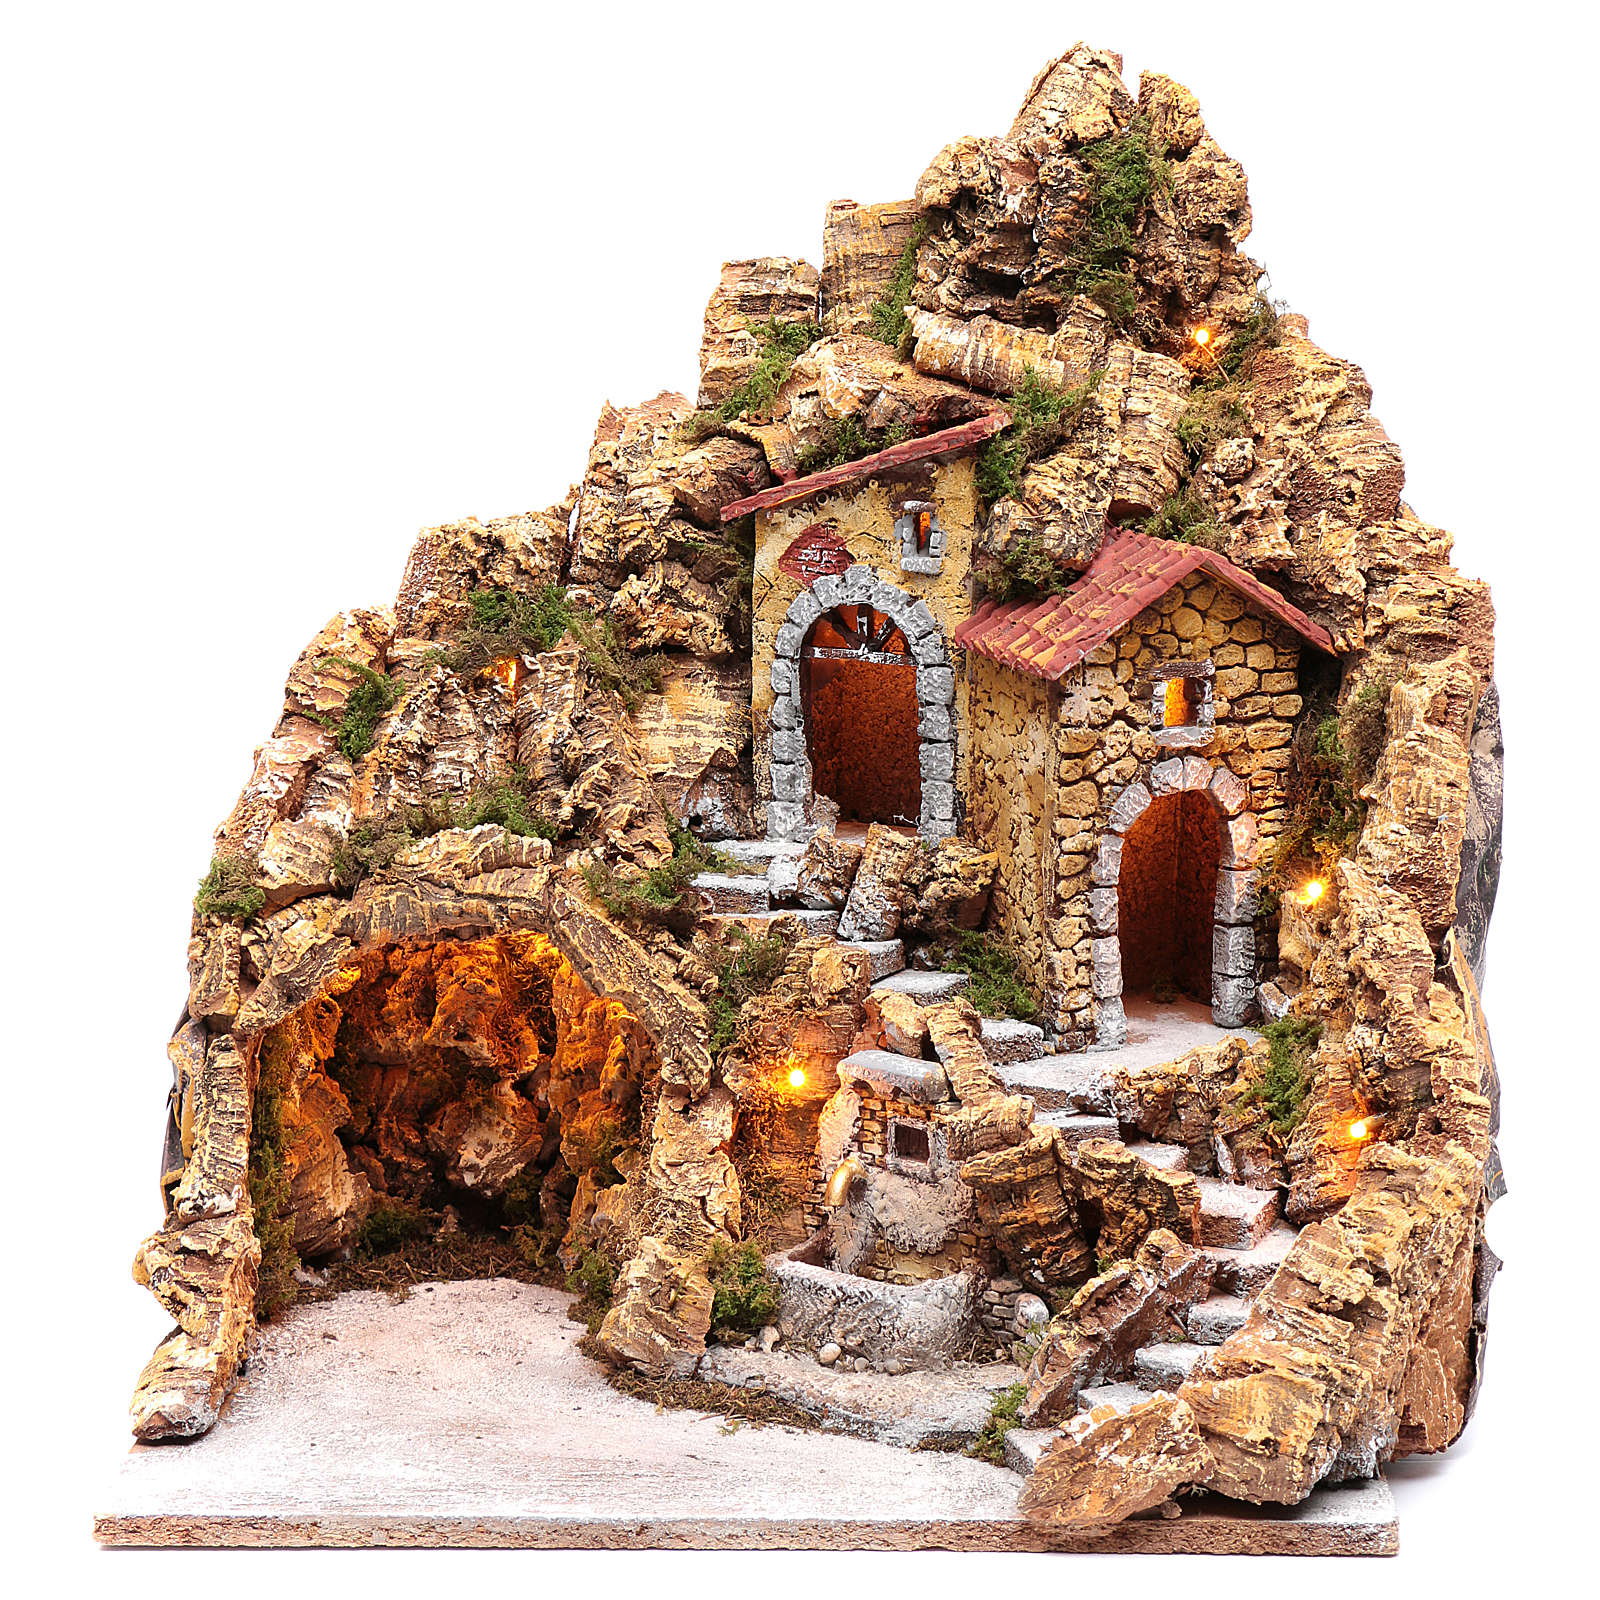 Illuminated Neapolitan nativity scene setting with hut and fountain 45X40X30 cm 4